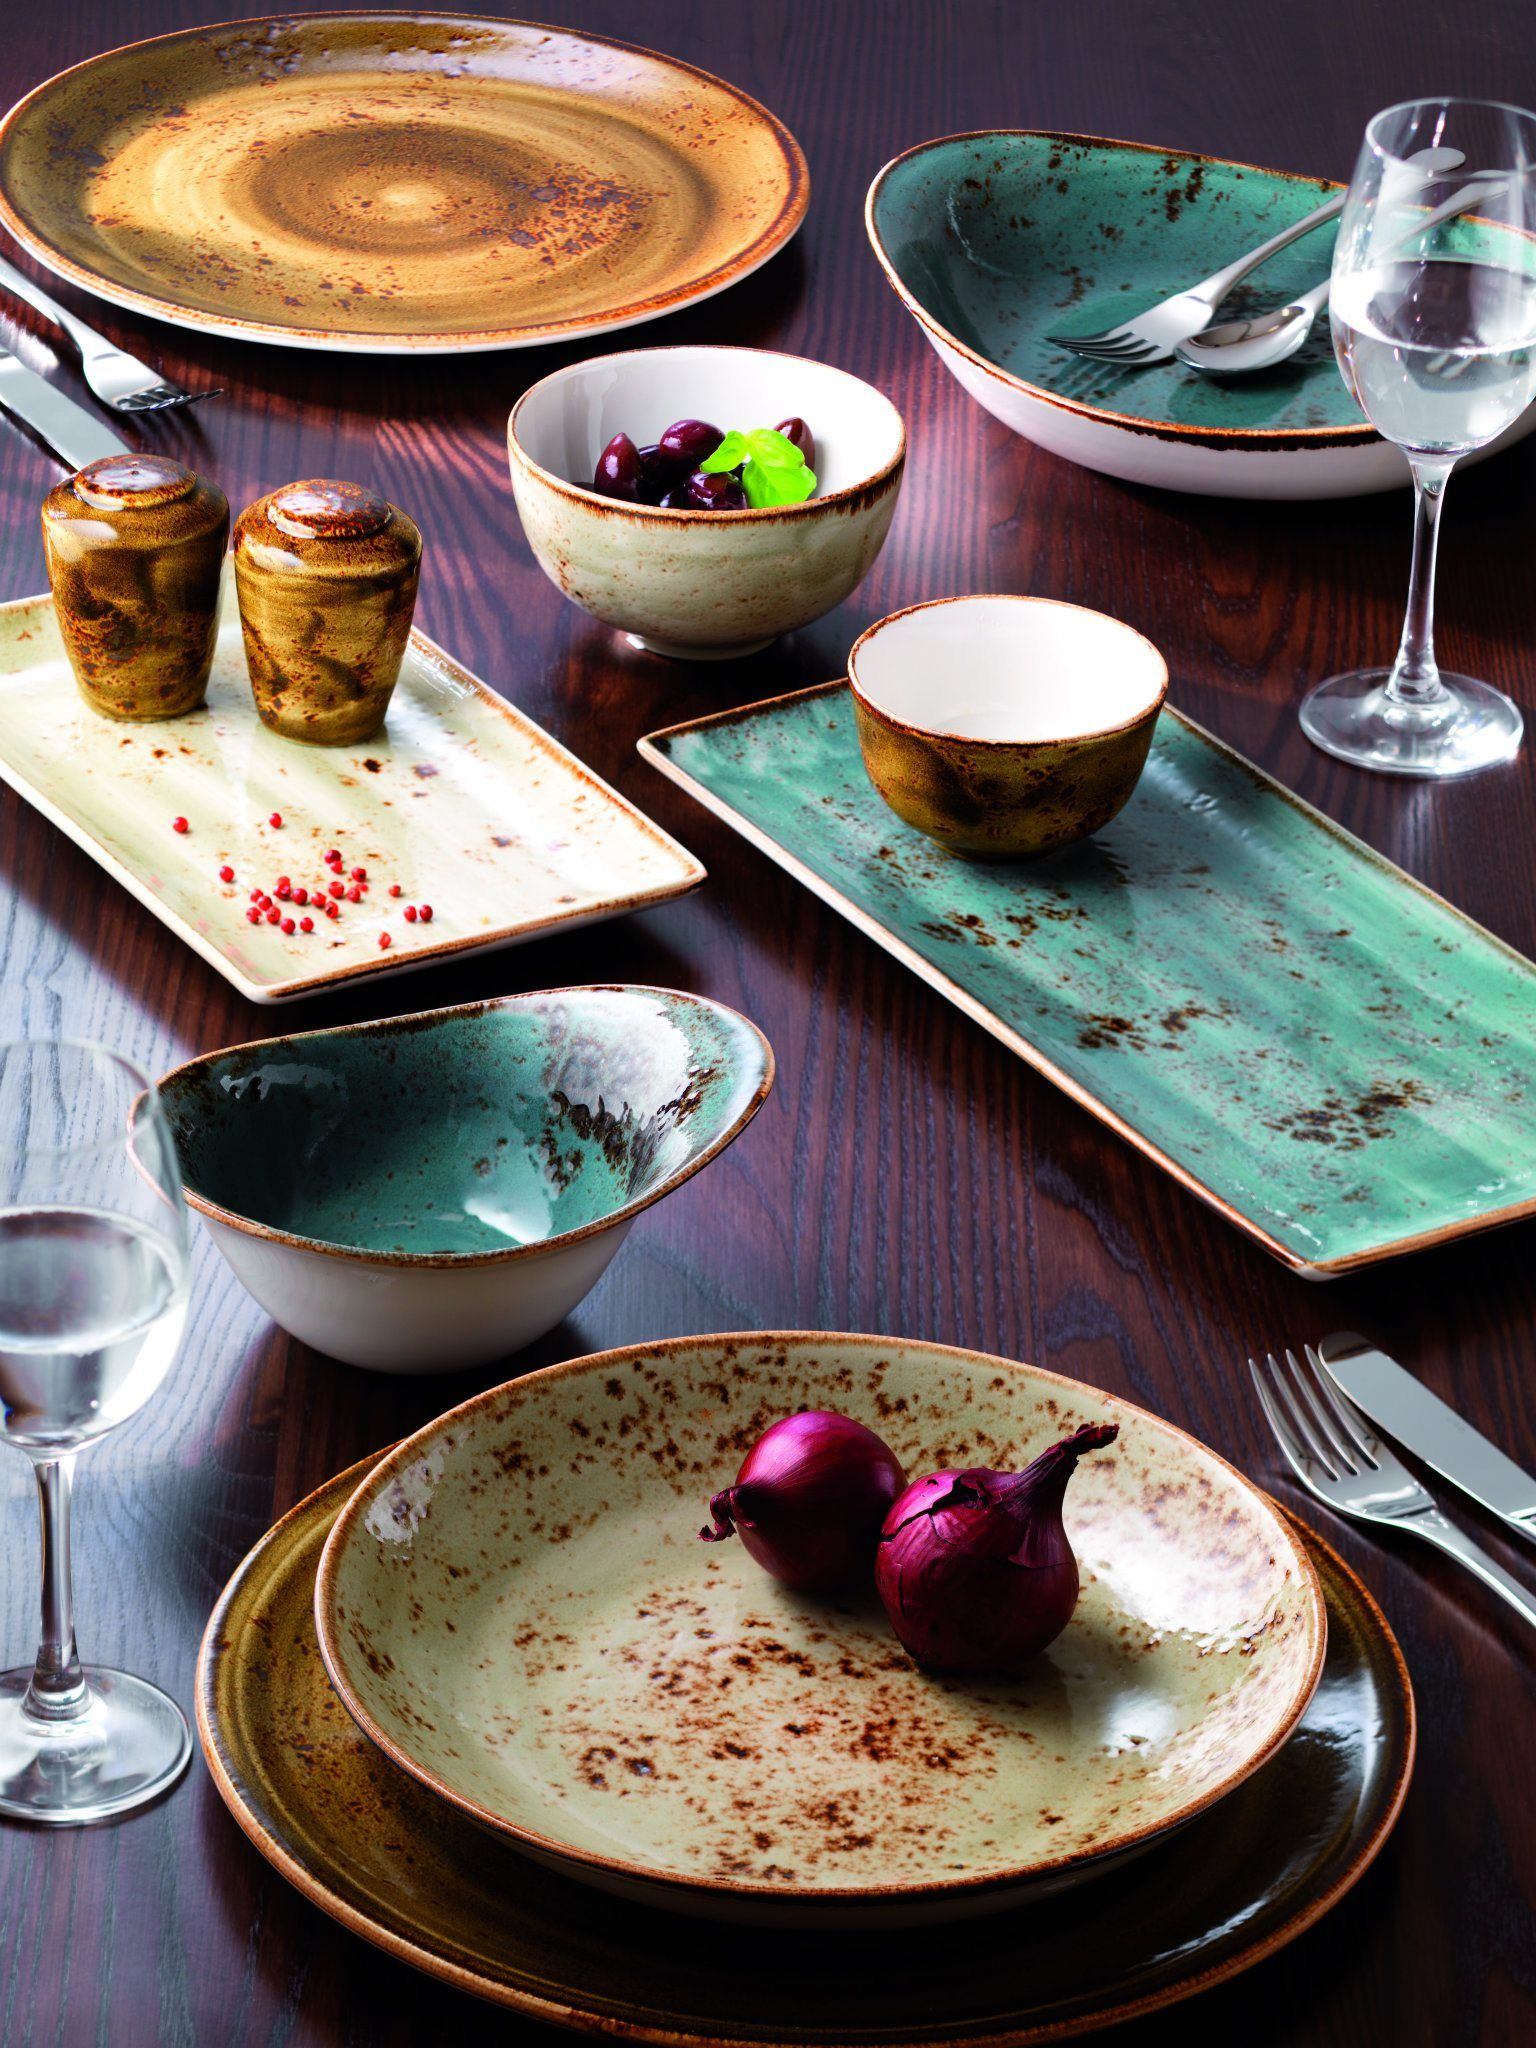 Craft By Steelite Performance Collection Tabletop Painted Ceramic Plates Ceramic Tableware Crockery